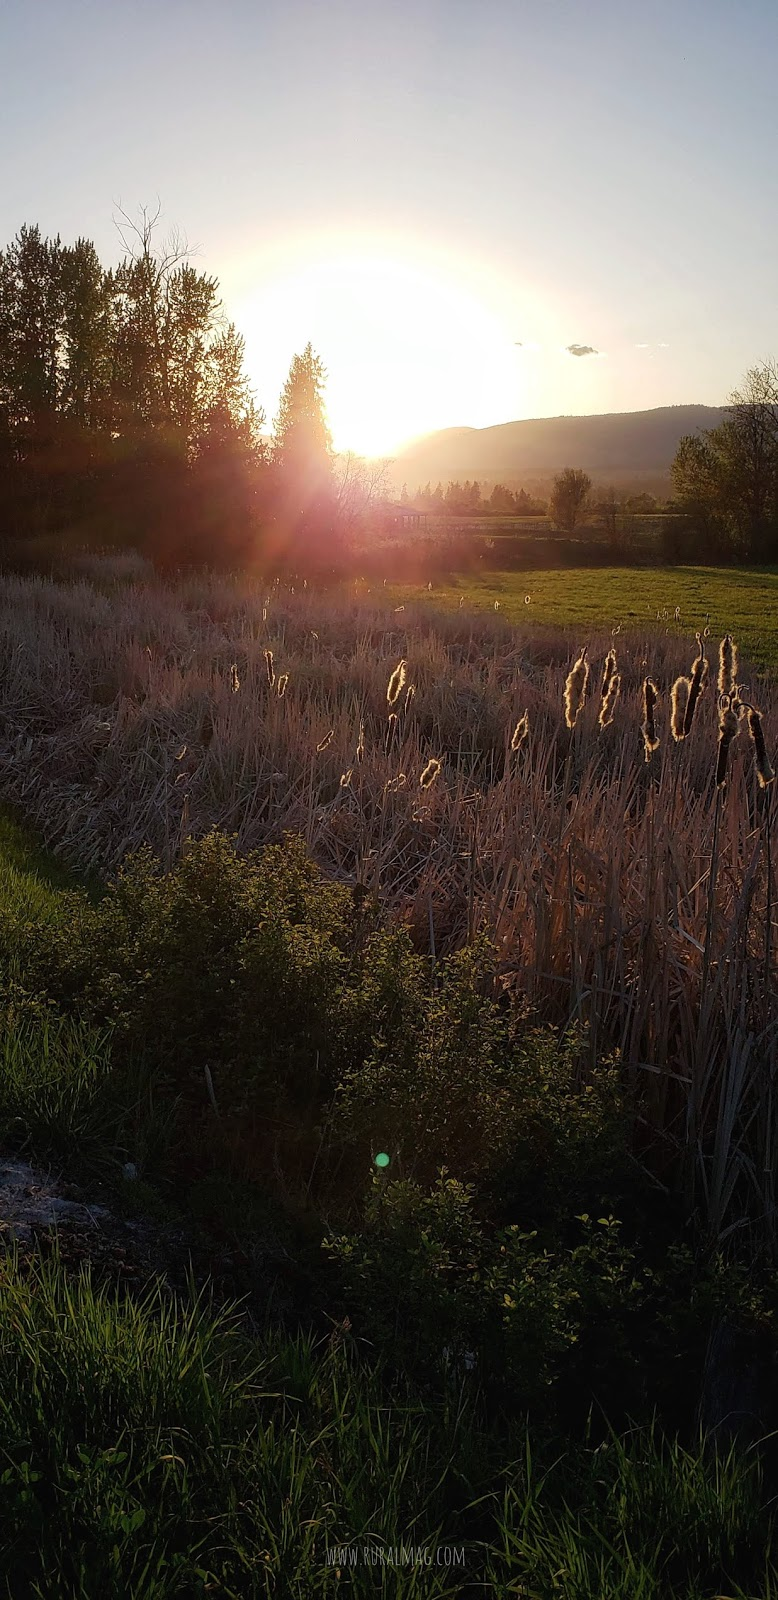 Sun setting over mountains and meadow in the Okanagan from www.ruralmag.com